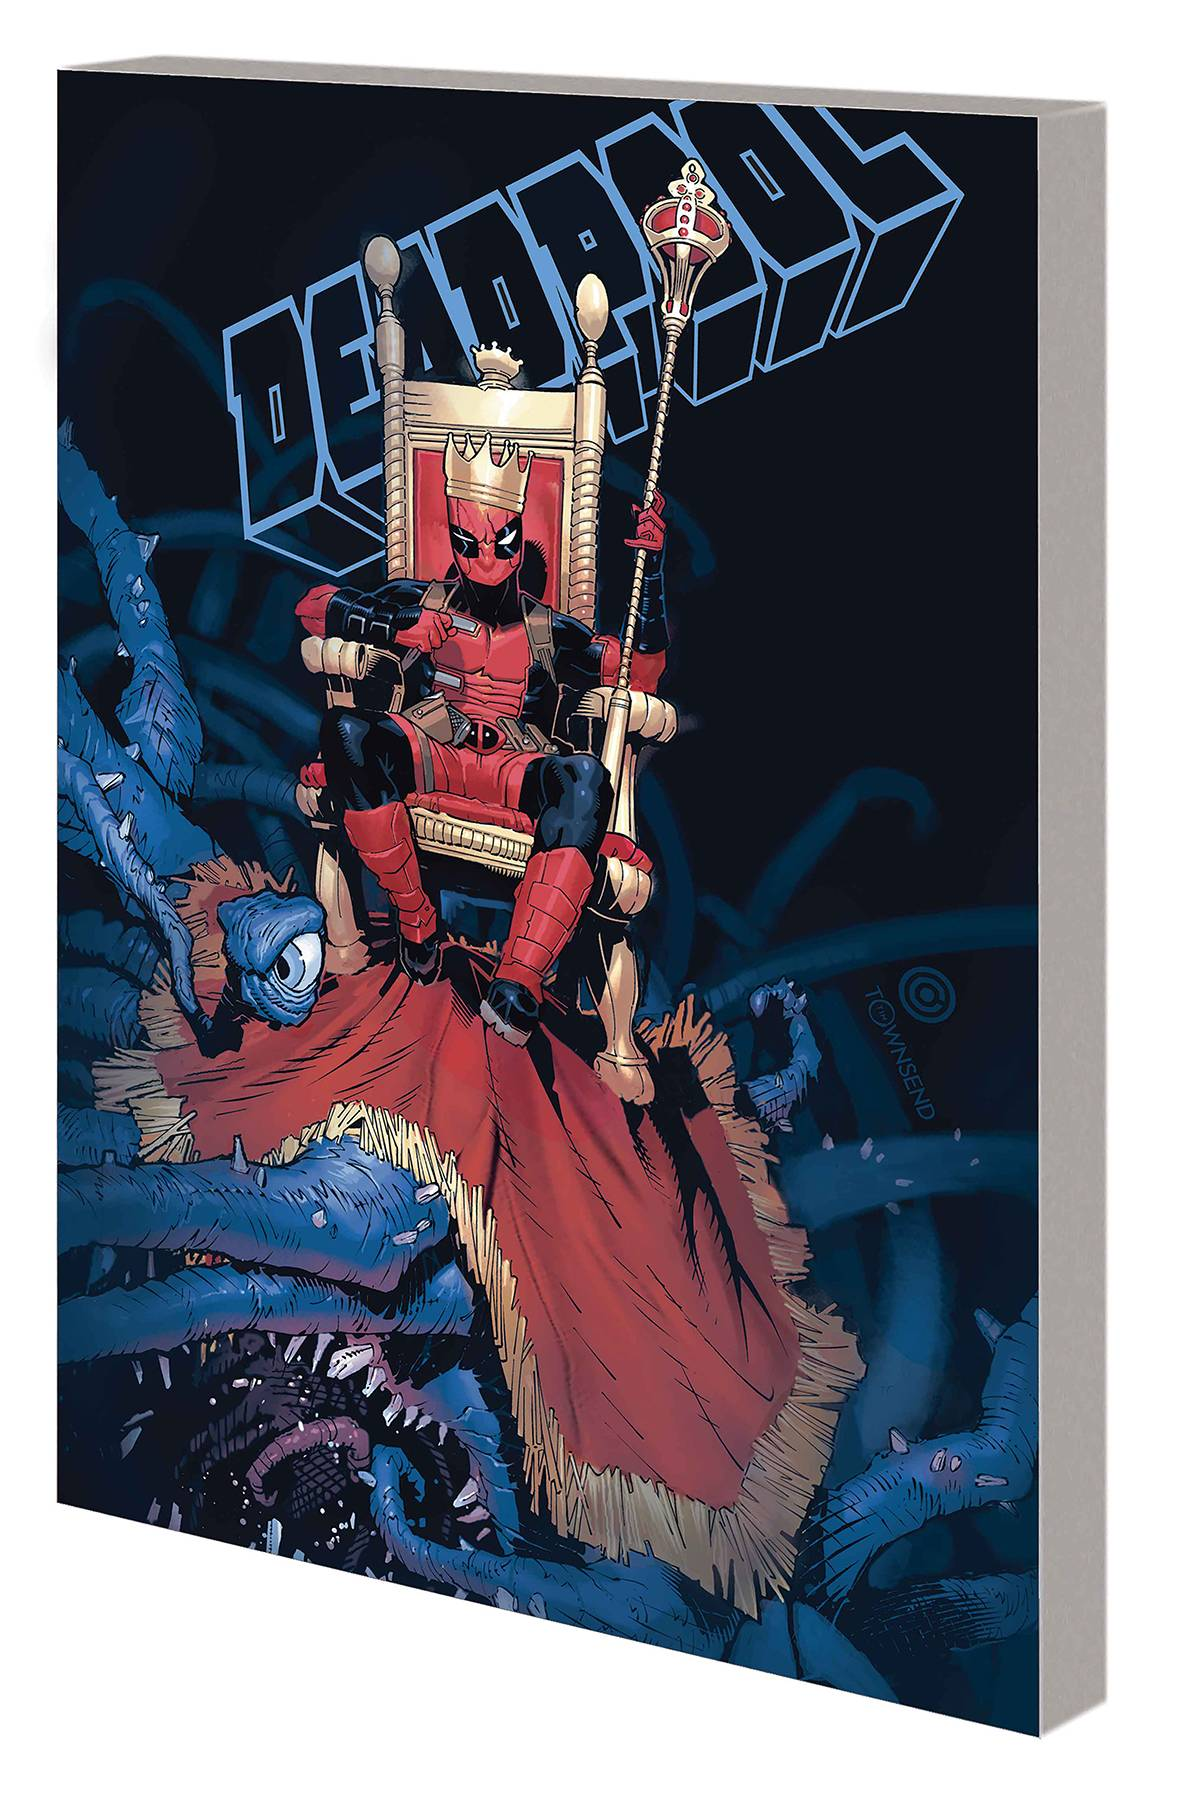 KING DEADPOOL TP VOL 01 HAIL TO THE KING | Phoenix Comics and Games